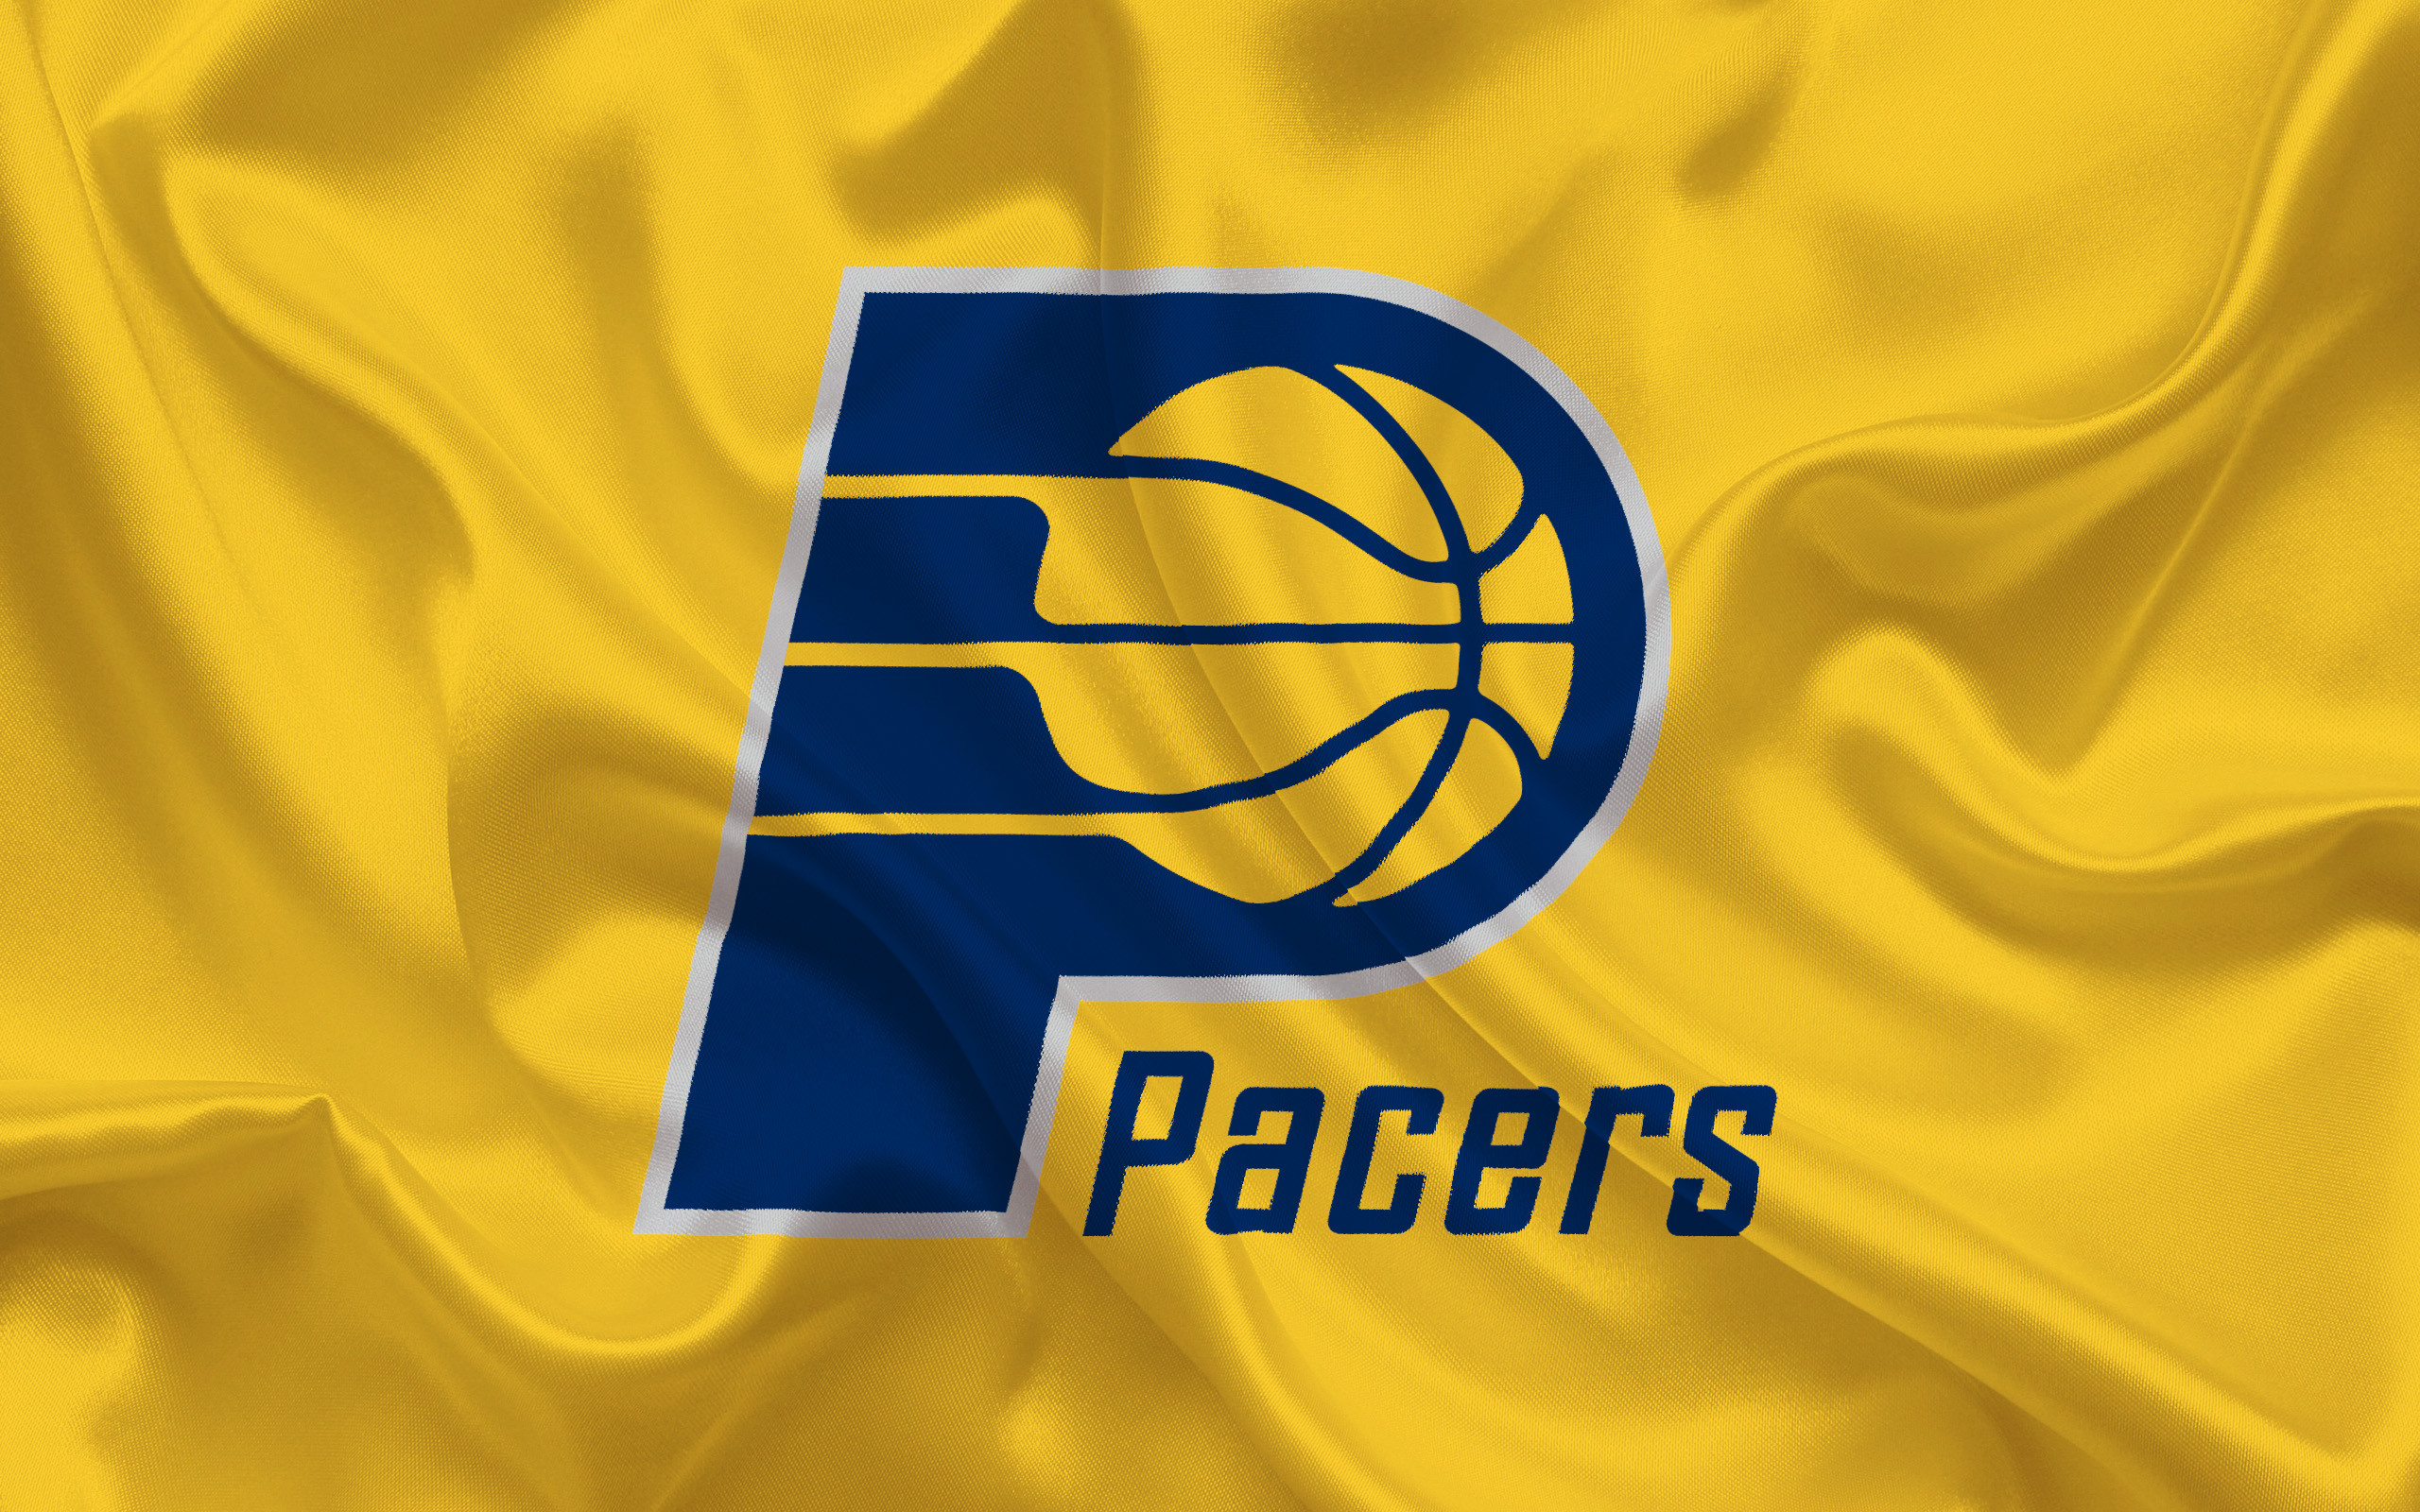 2560x1600 Indiana Pacers, Basketball club, NBA, USA, basketball, Indiana Pacers  emblem,